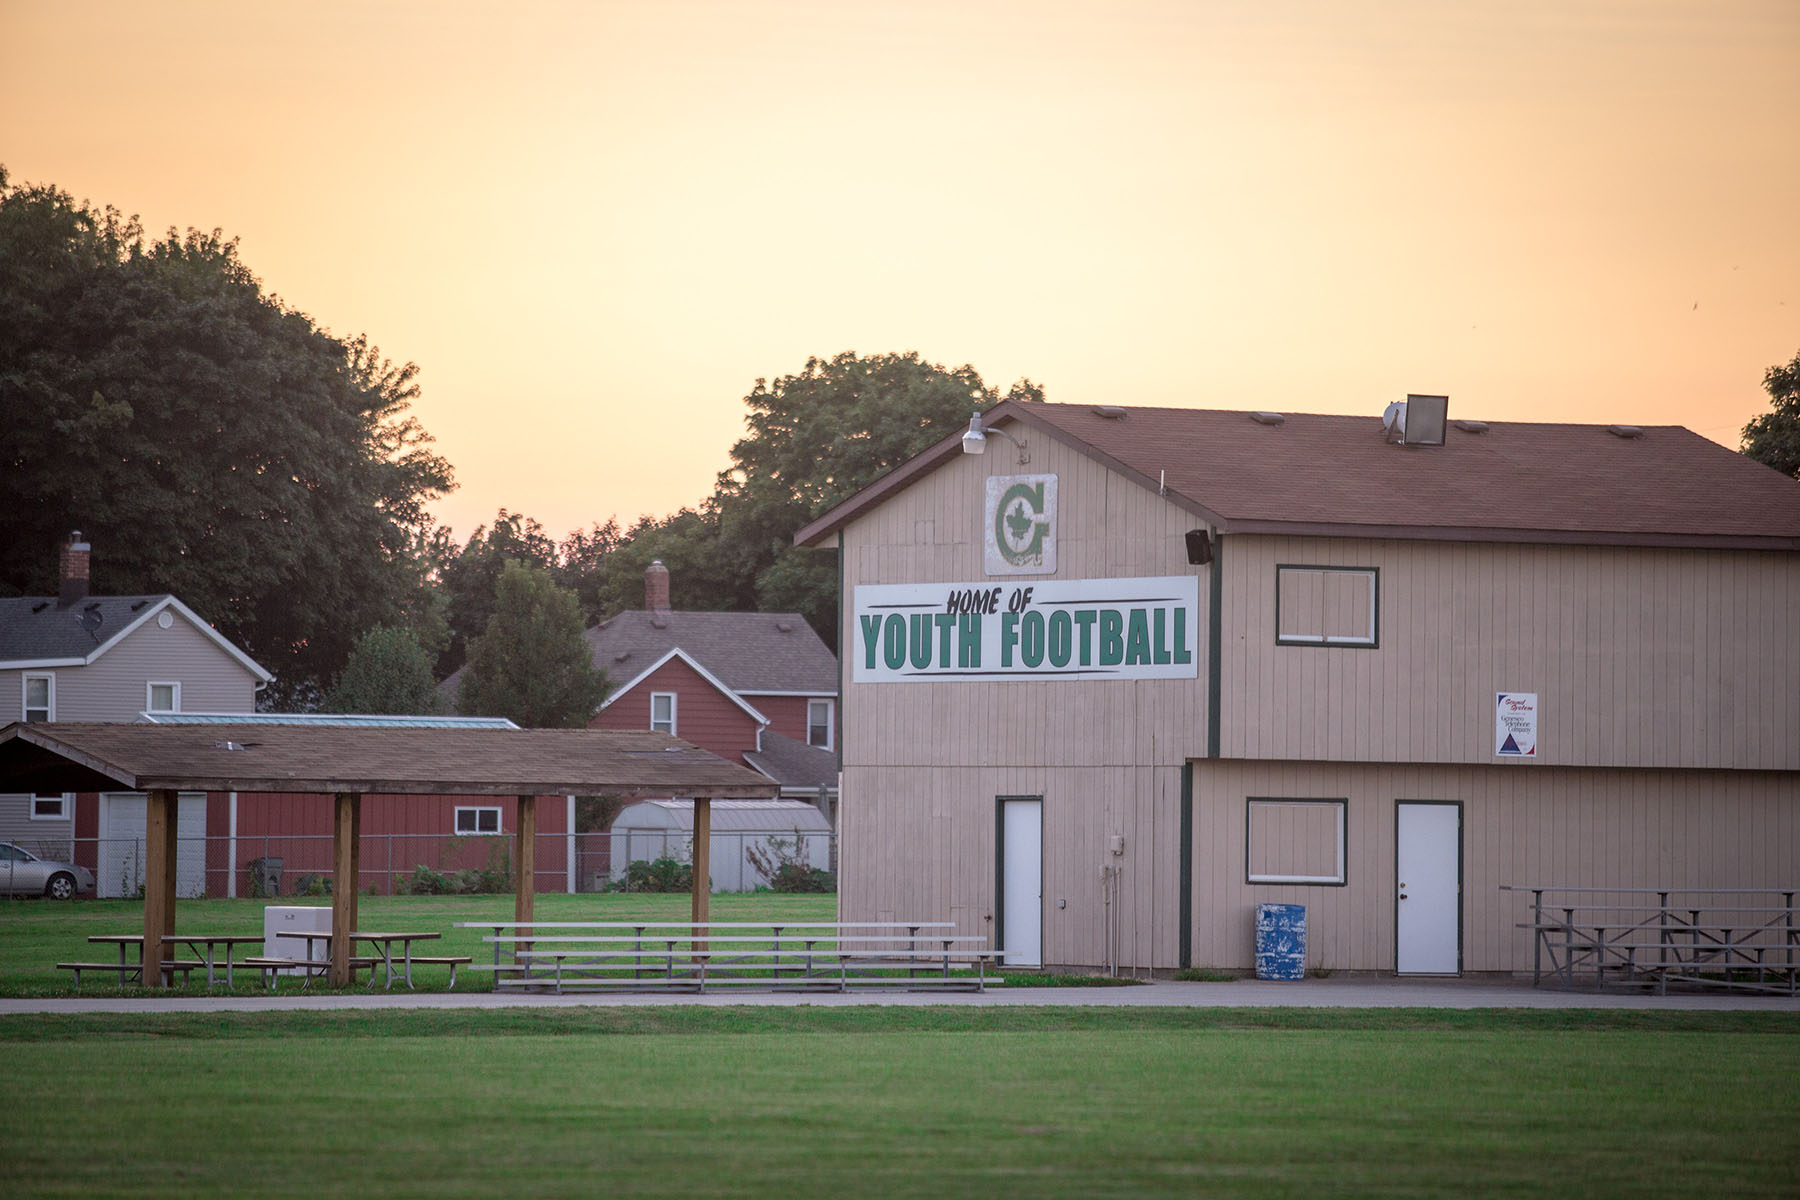 The Geneseo Foundation proudly supports youth athletics and recreation.